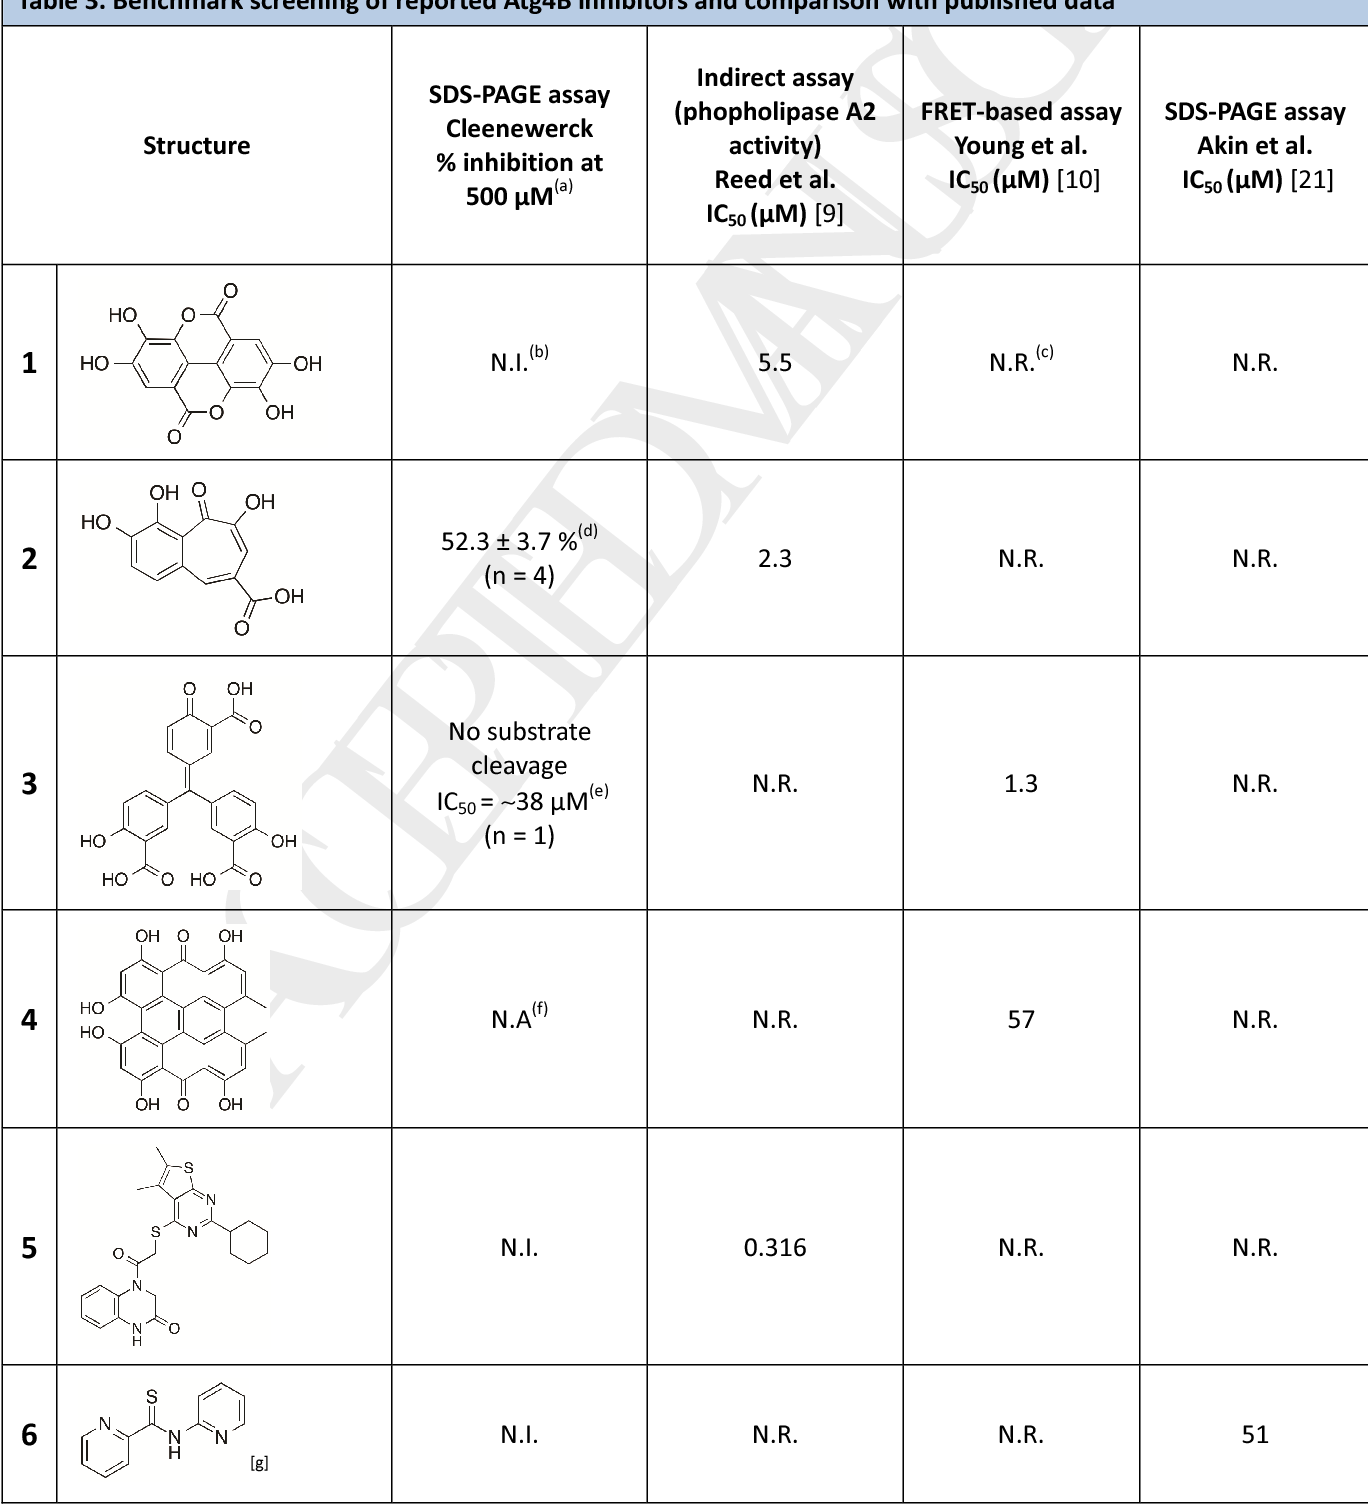 Table 3. Benchmark screening of reported Atg4B inhibitors and comparison with published data